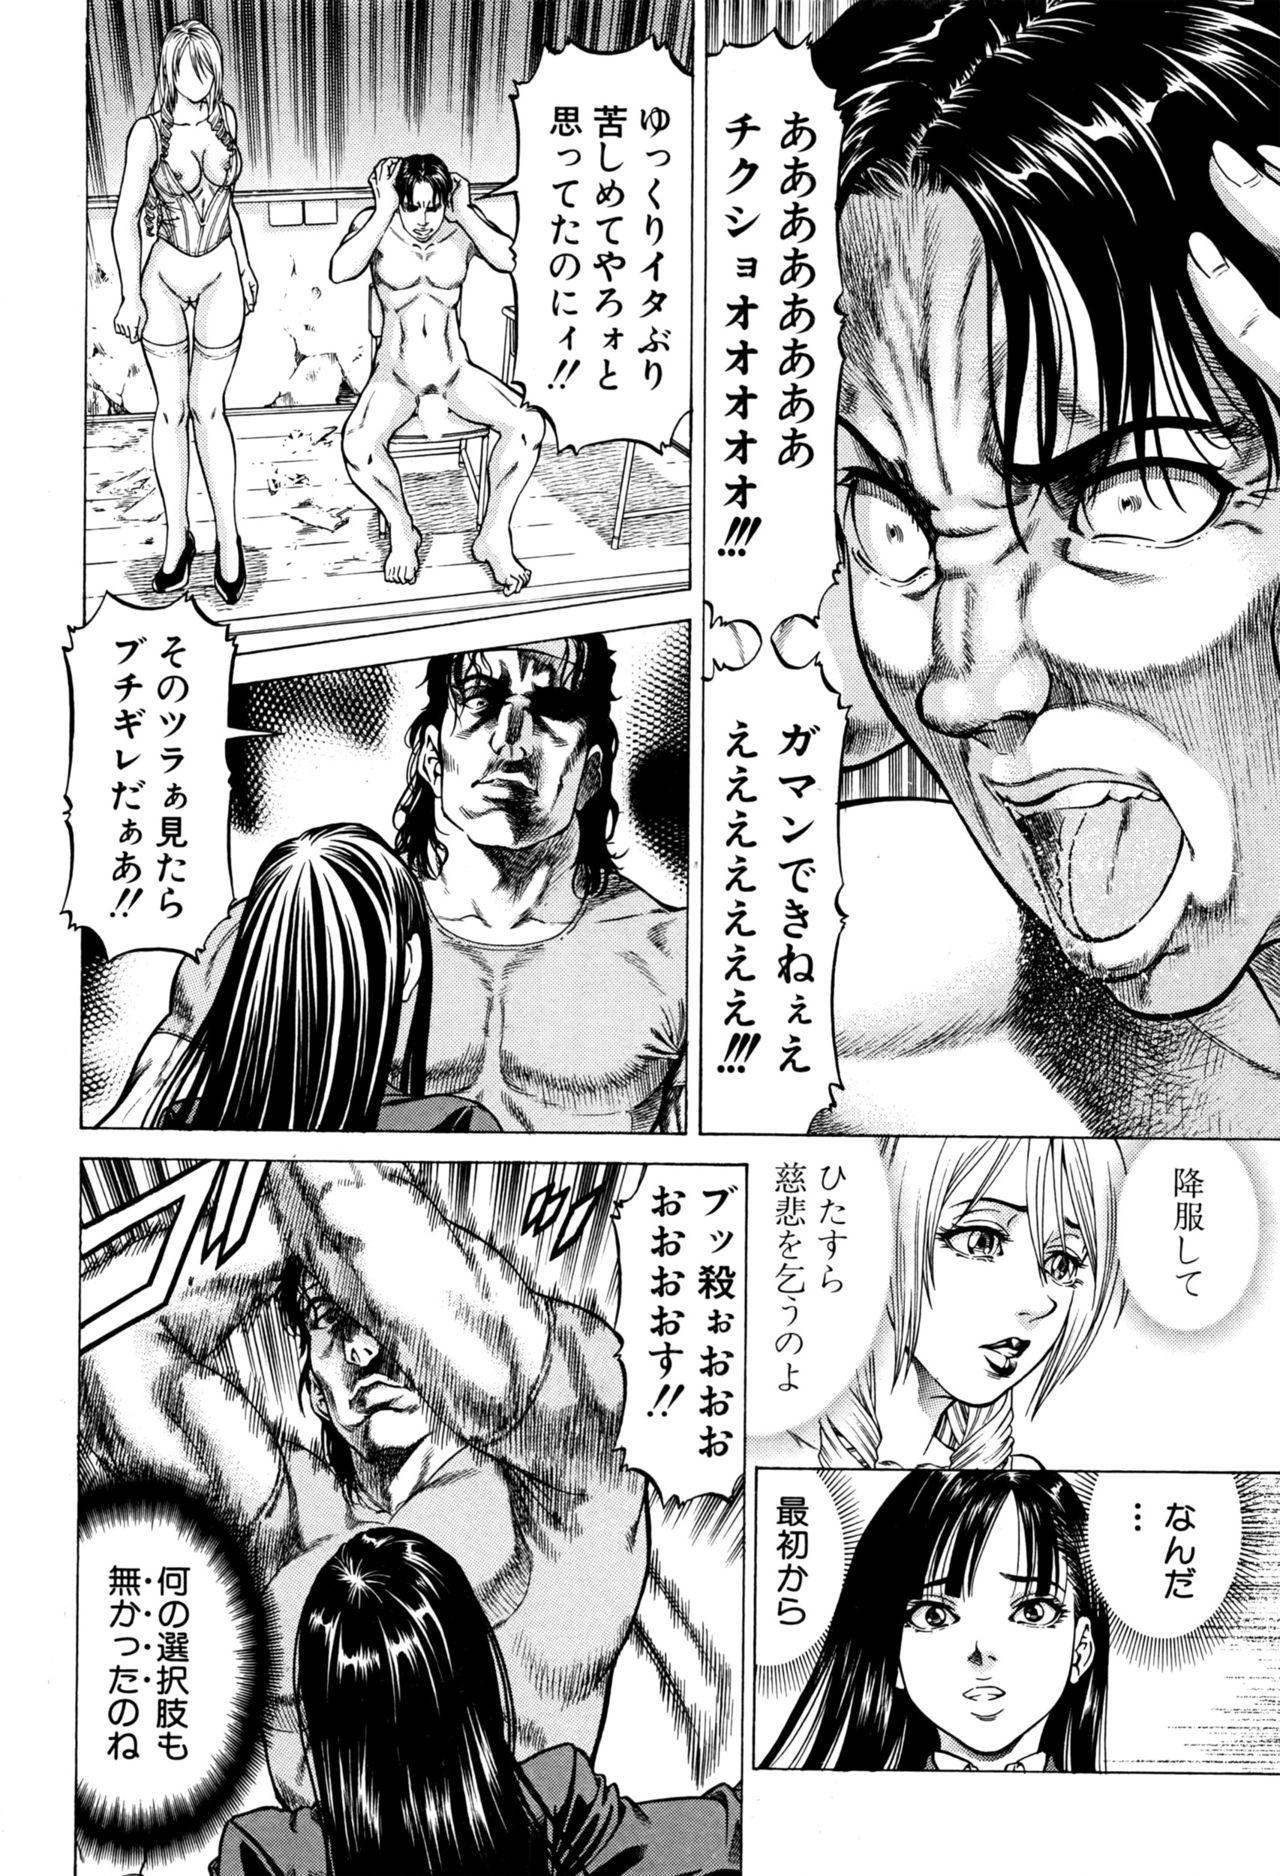 BUSTER COMIC 2016-09 188